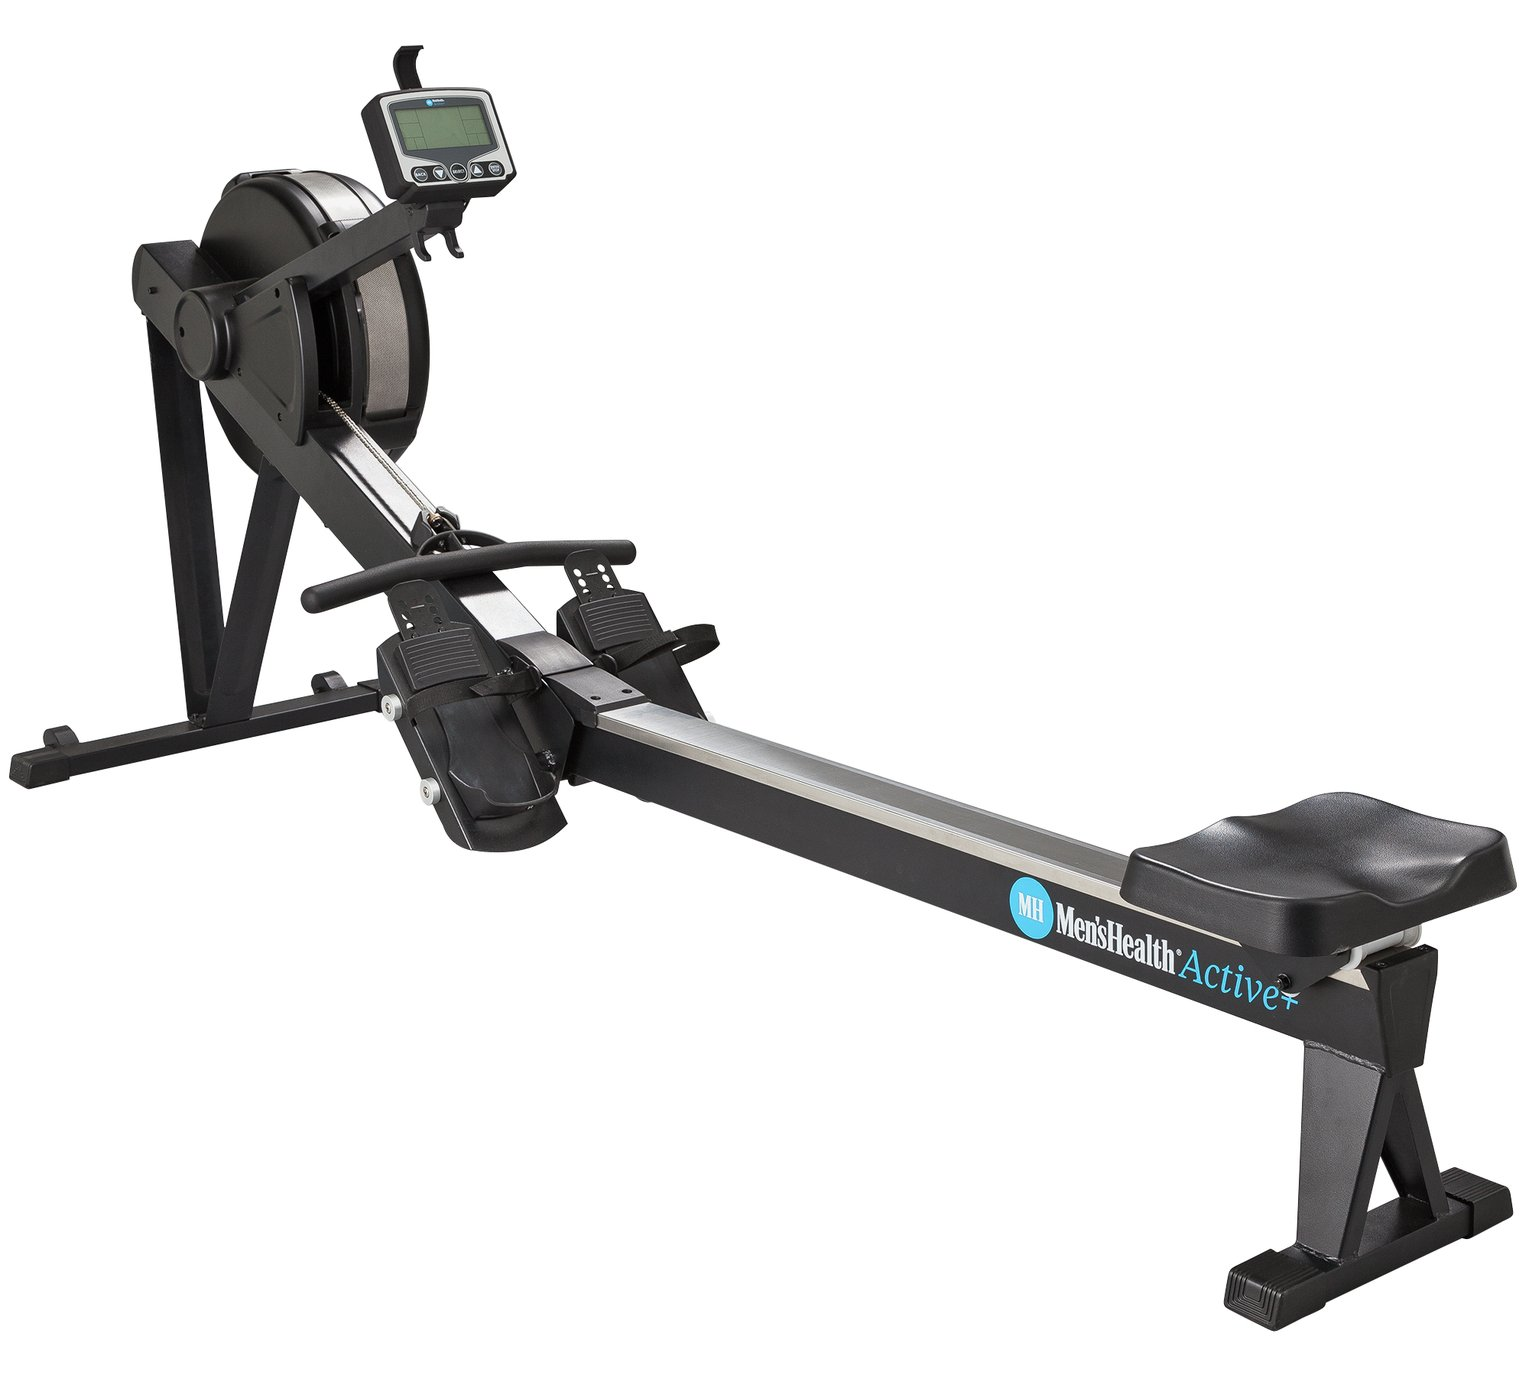 Men's Health Dual Resistance Air and Magnetic Rowing Machine